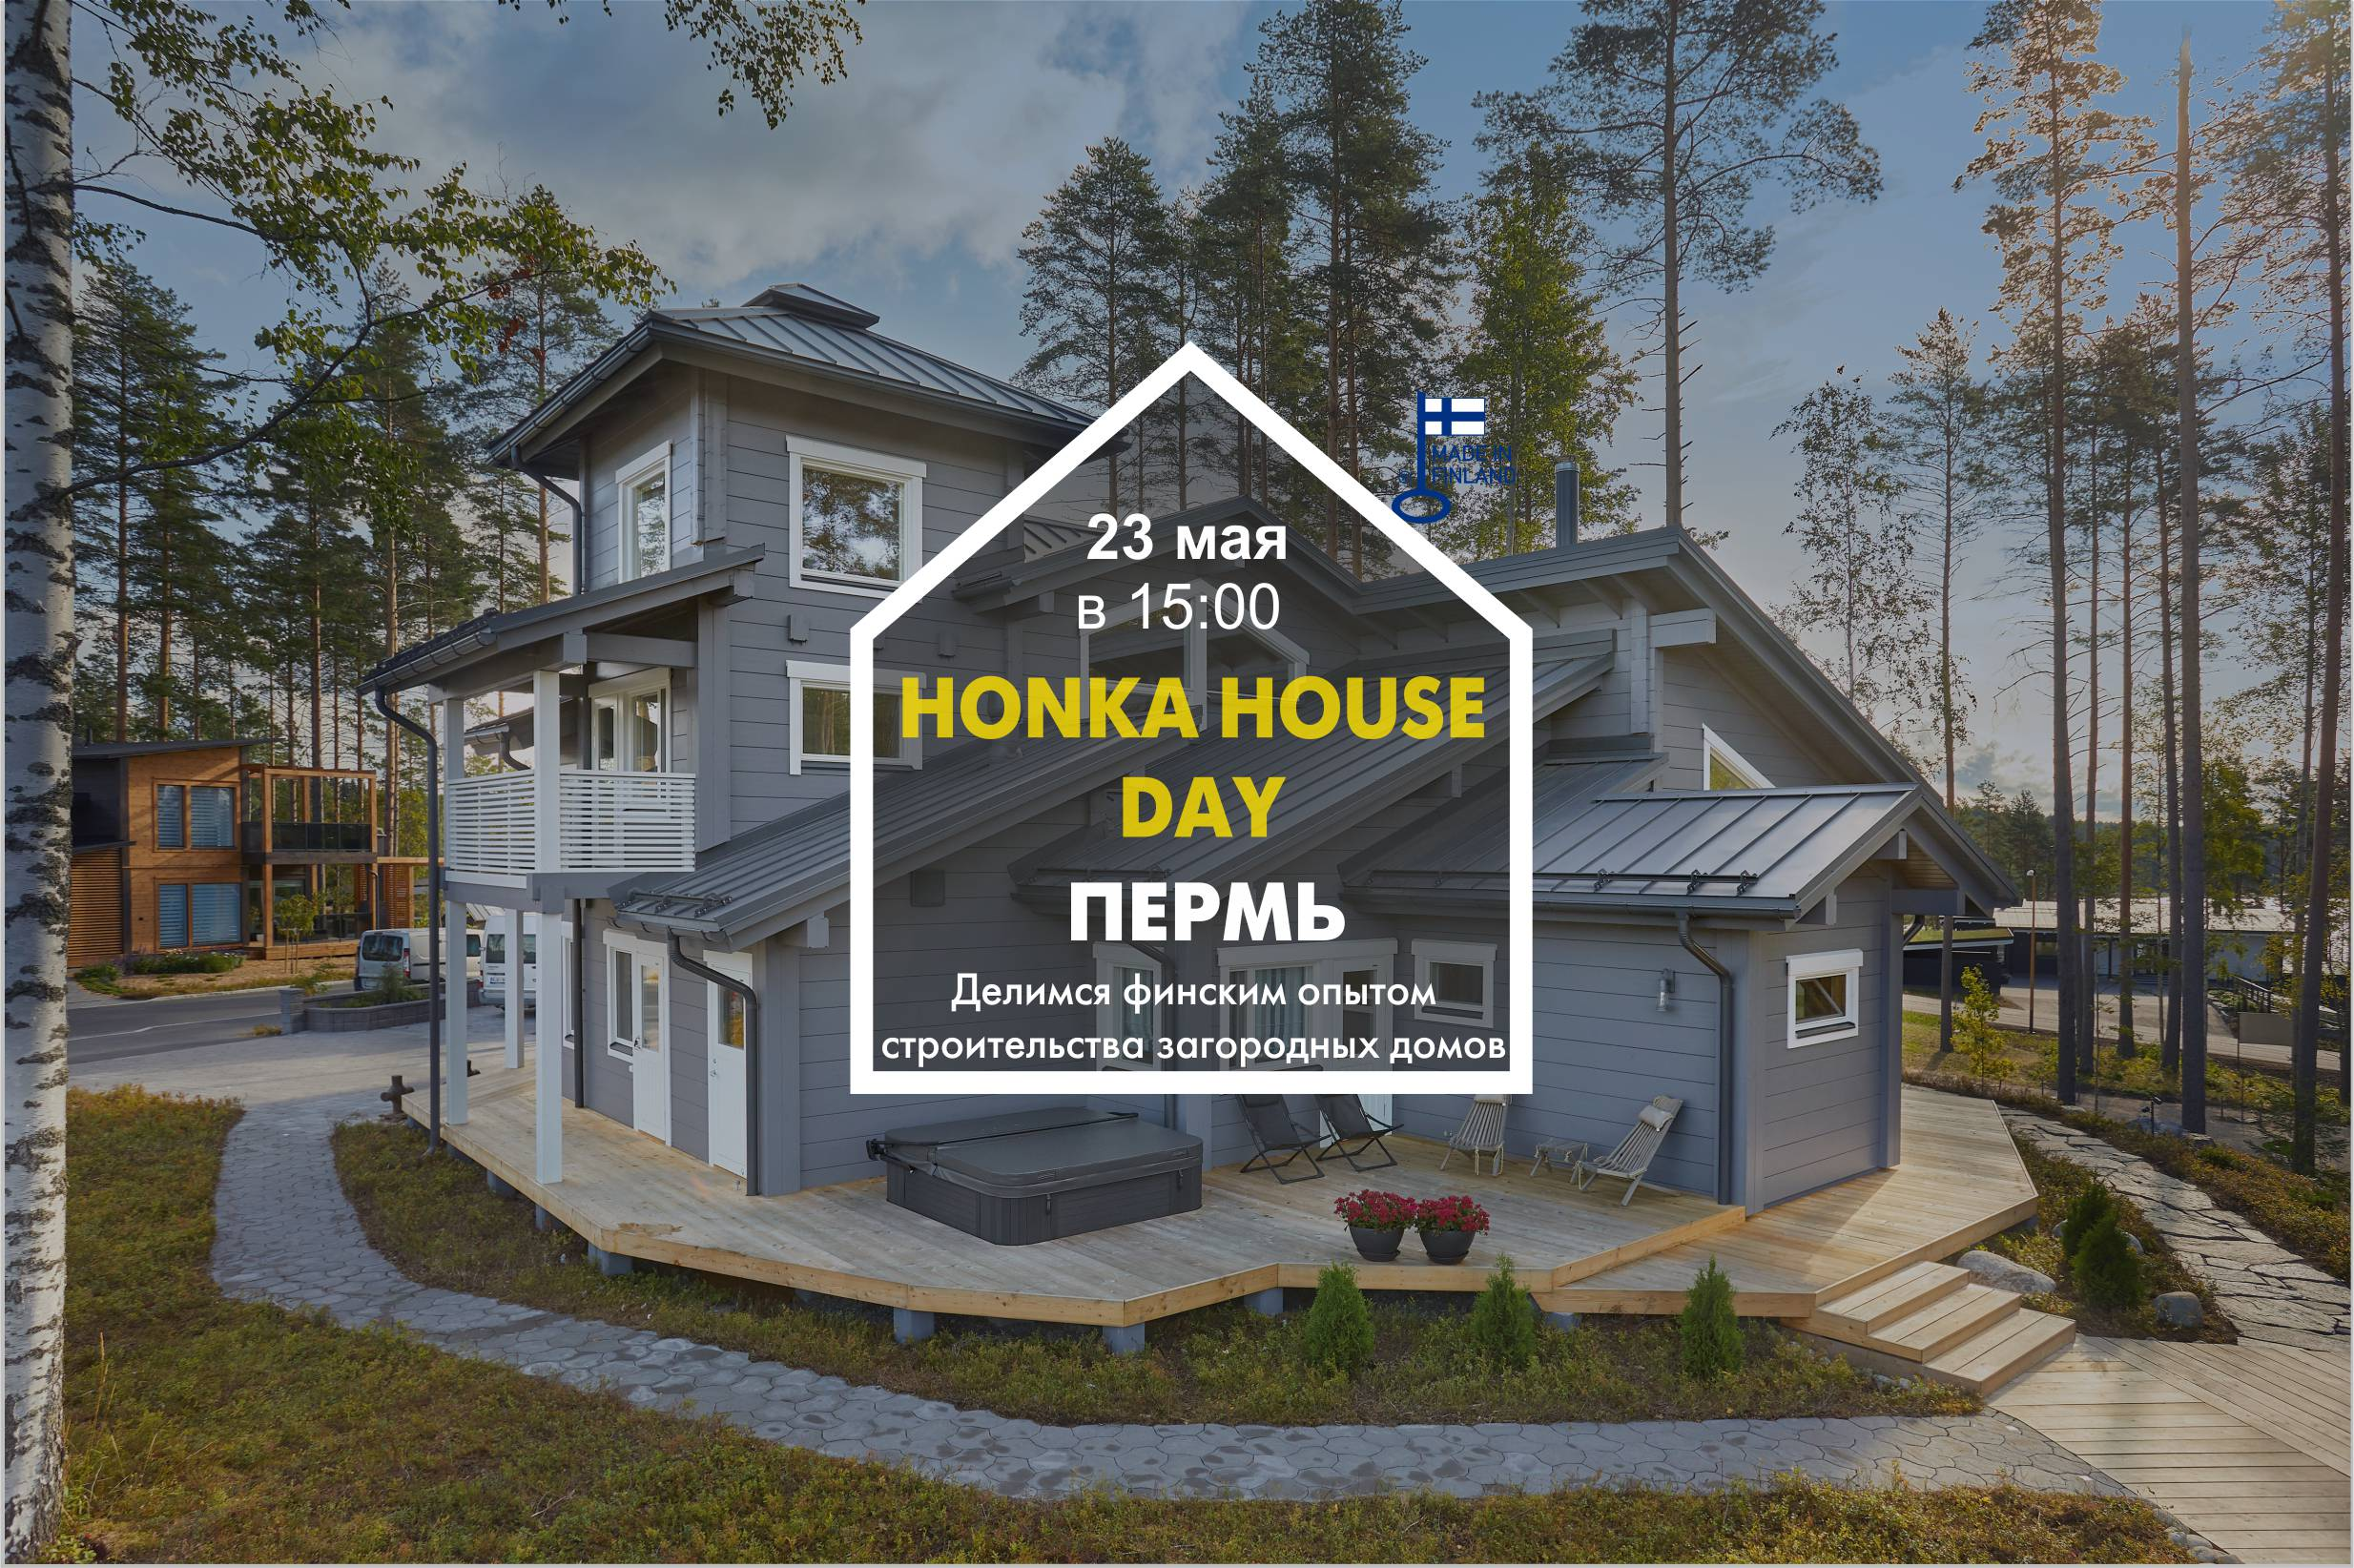 HONKA HOUSE DAY PERM